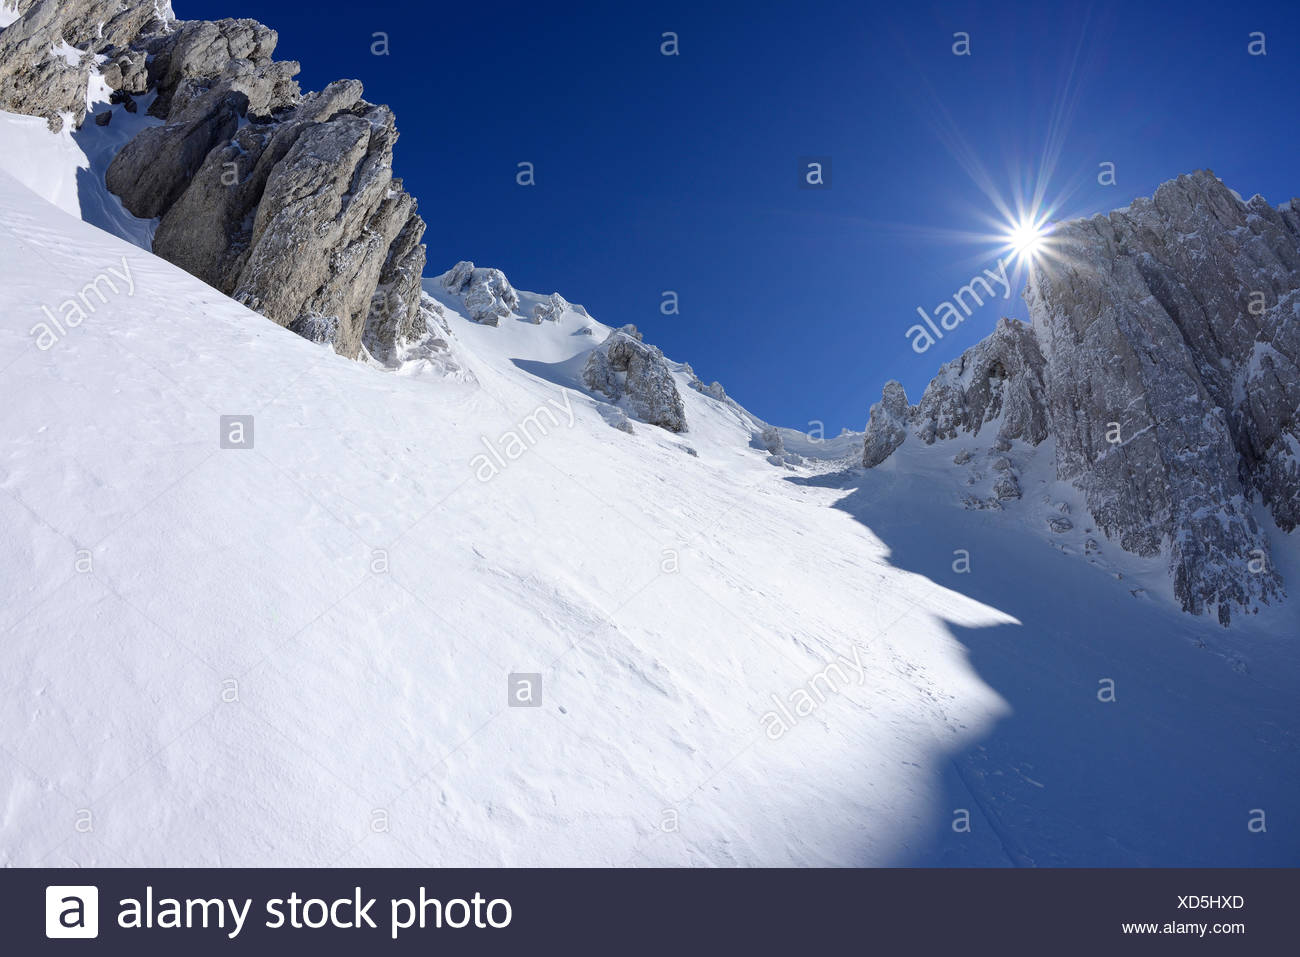 Sun gleaming over the snow-covered cirque at Monte Sirente, Valle Lupara, Monte Sirente, Abruzzi, Apennines, l' Aquila, Italy - Stock Image